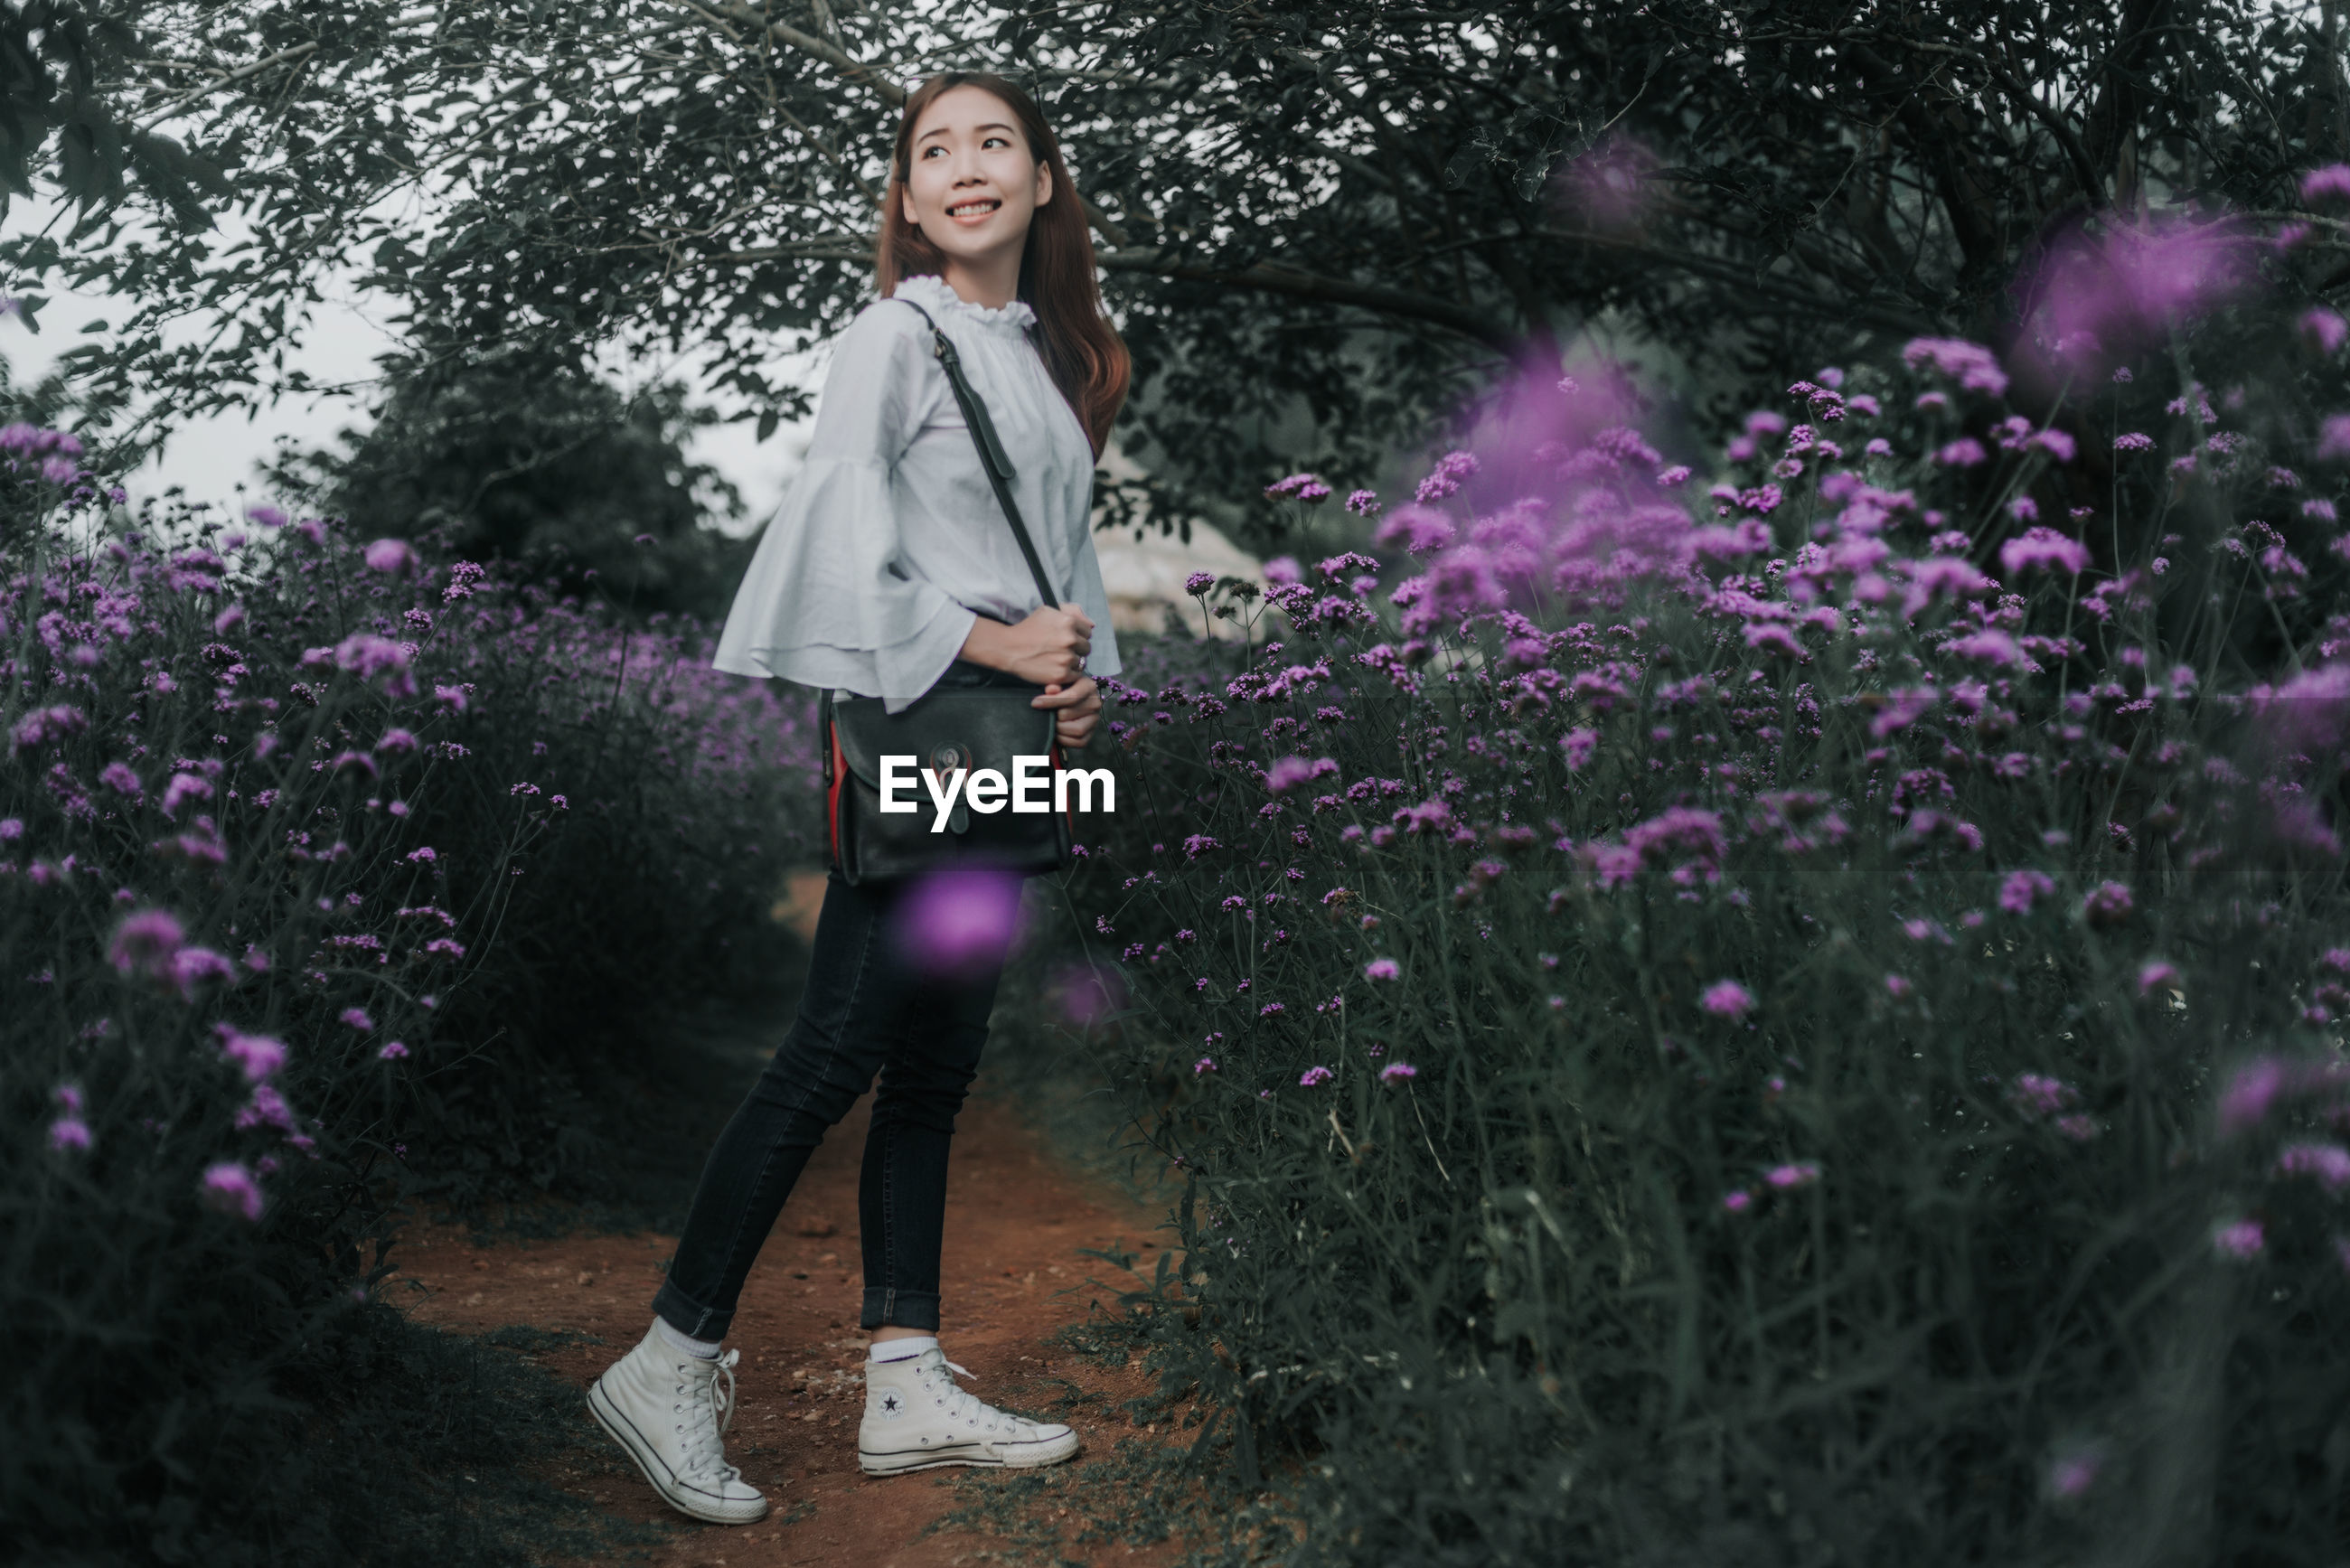 PORTRAIT OF A BEAUTIFUL YOUNG WOMAN STANDING ON PURPLE FLOWERING PLANTS